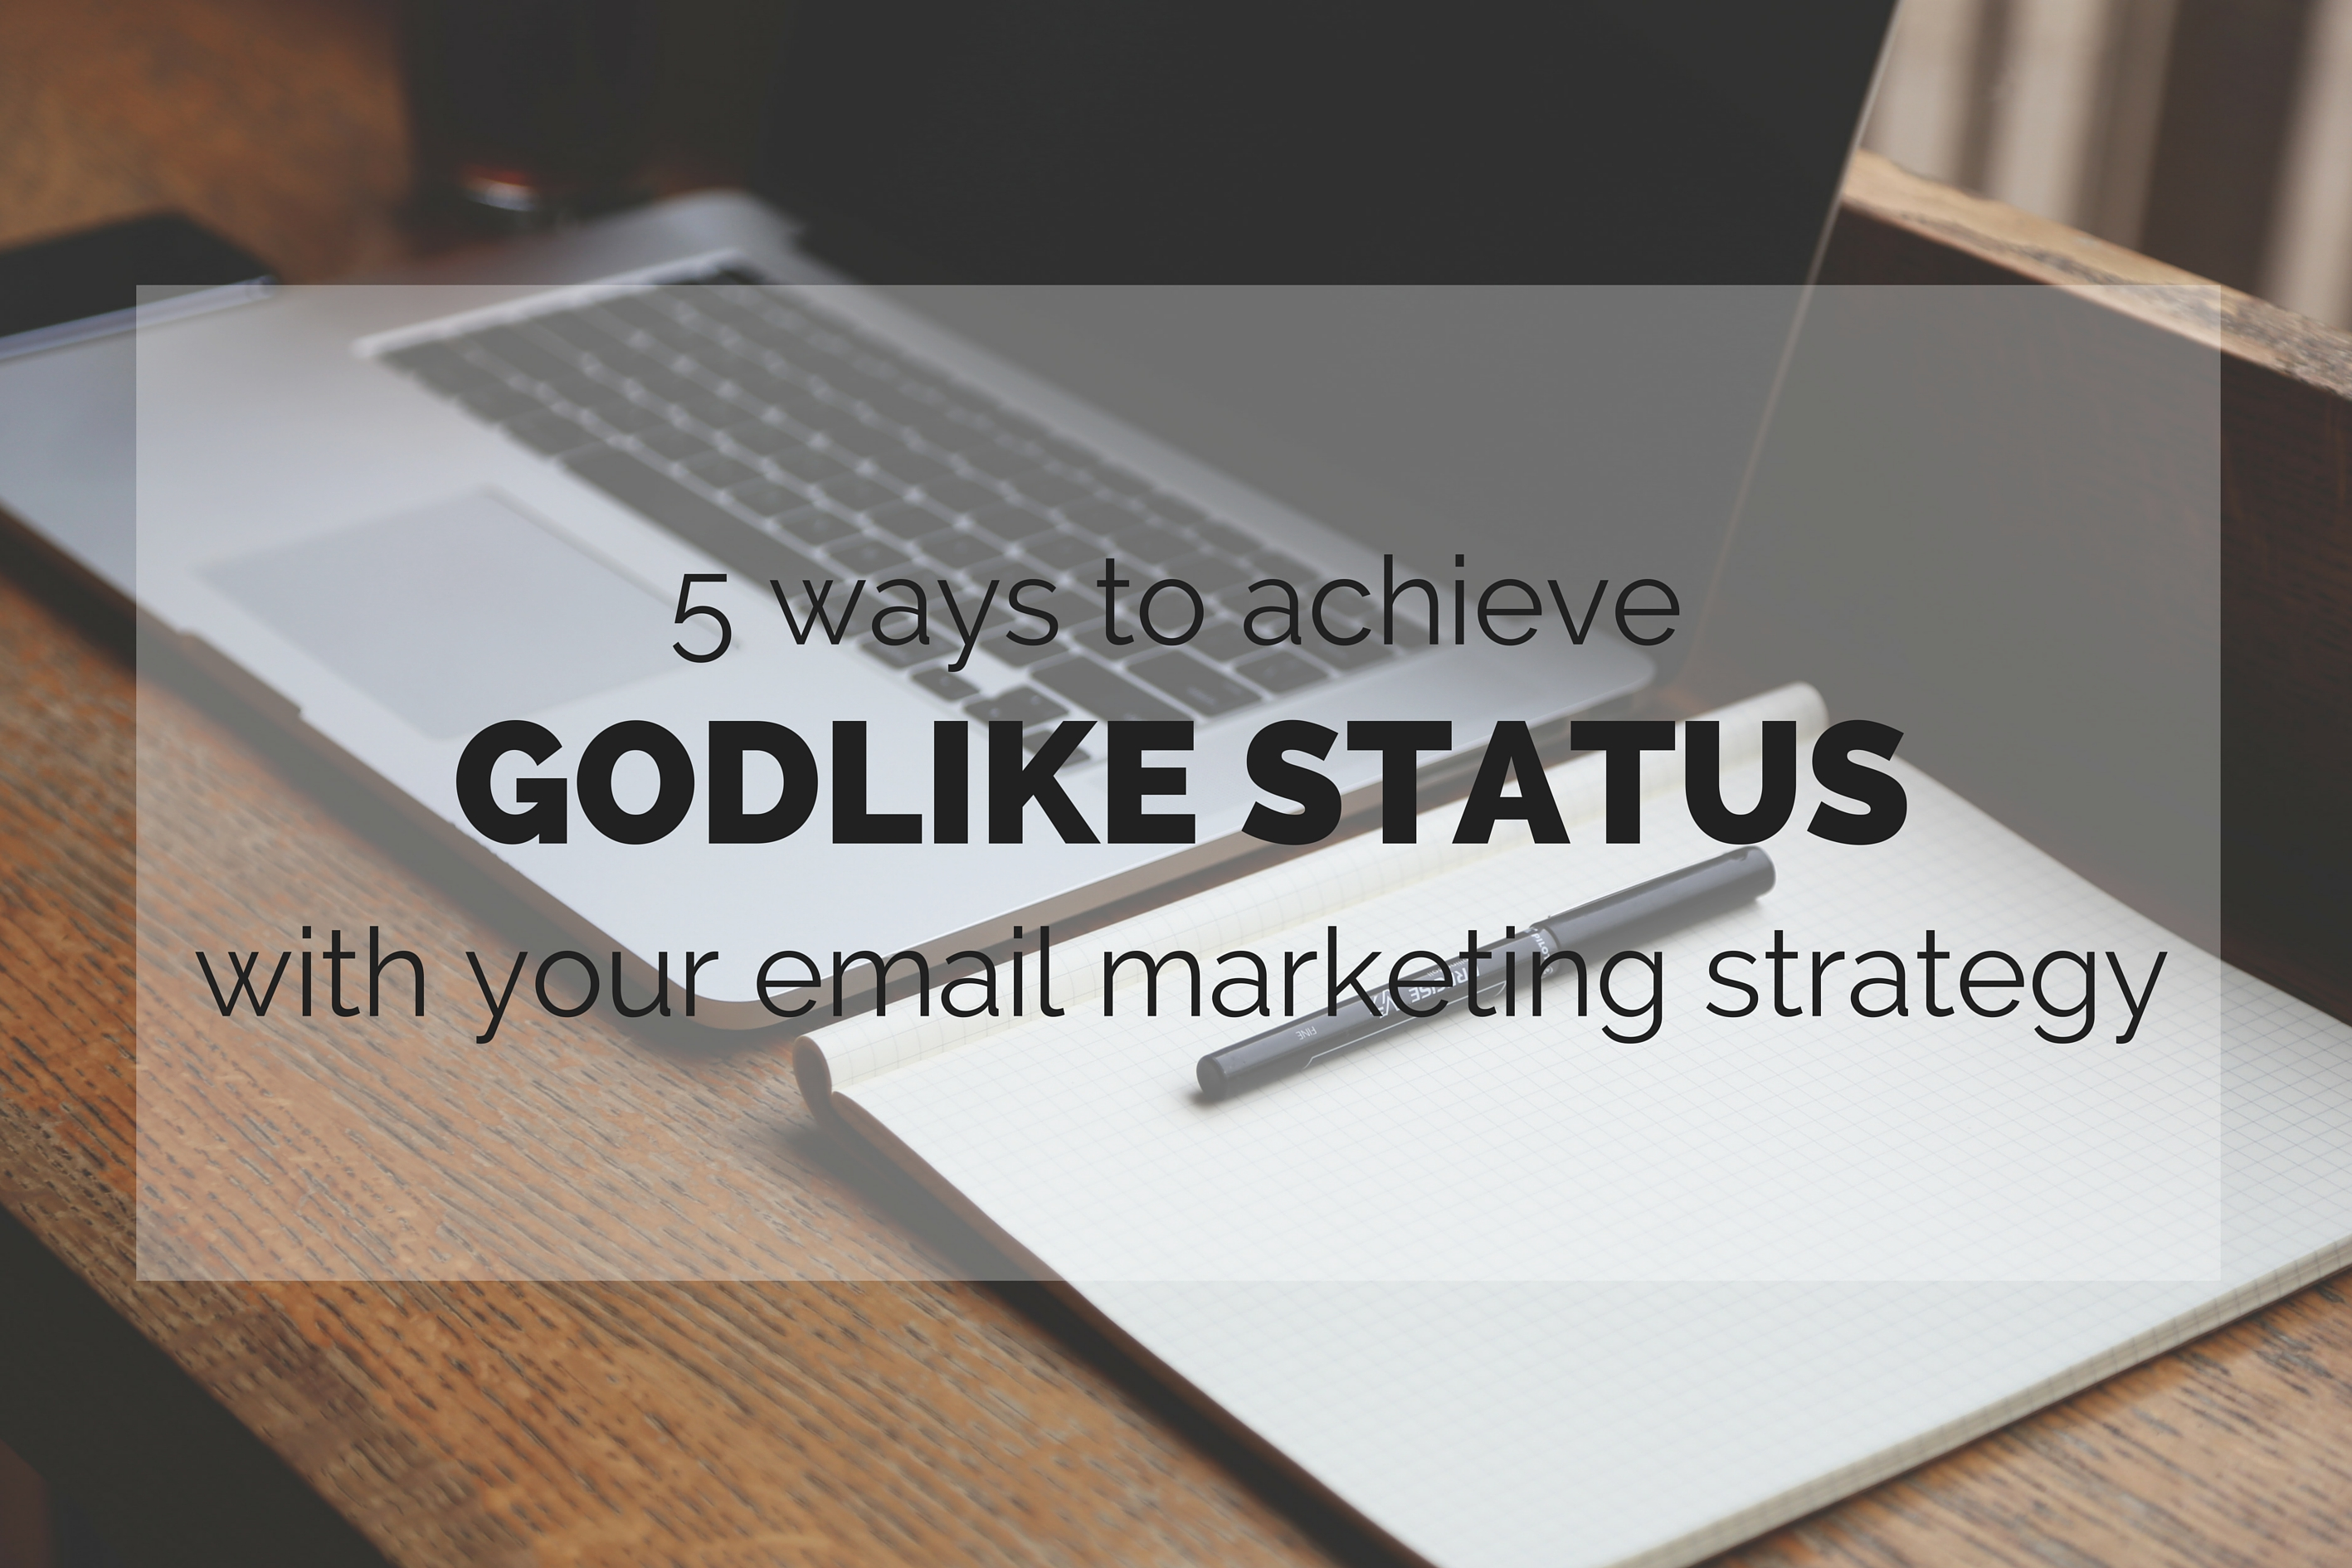 5 ways to achieve Godlike status with your email marketing strategy